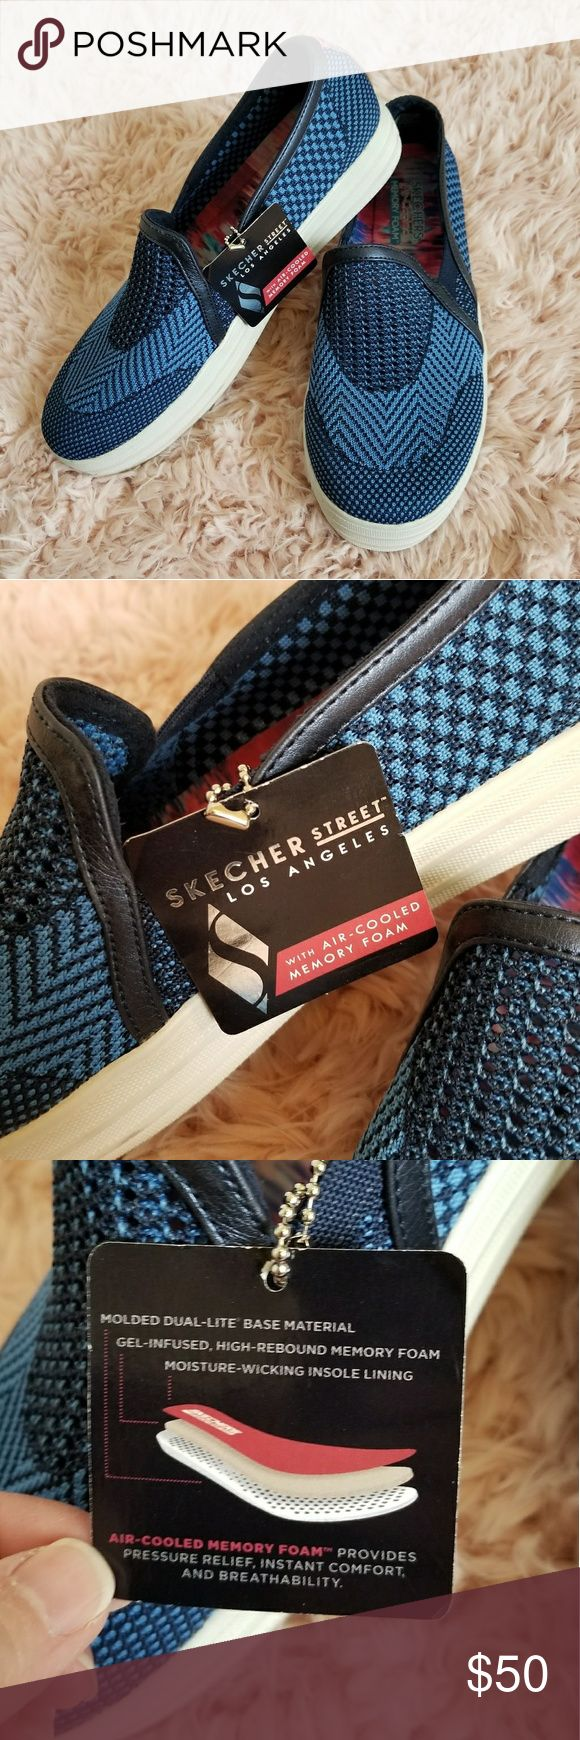 NWOT Skechers Blue Air Cooled Memory Foam Slip On Super vibrant & pretty blue & navy Skechers slip on sneakers!  New without tags, in size 8.5.  Features air cooled memory foam cushioned comfort insole.  Feel & look great in these easy slip on sneakers 😊! Skechers Shoes Sneakers